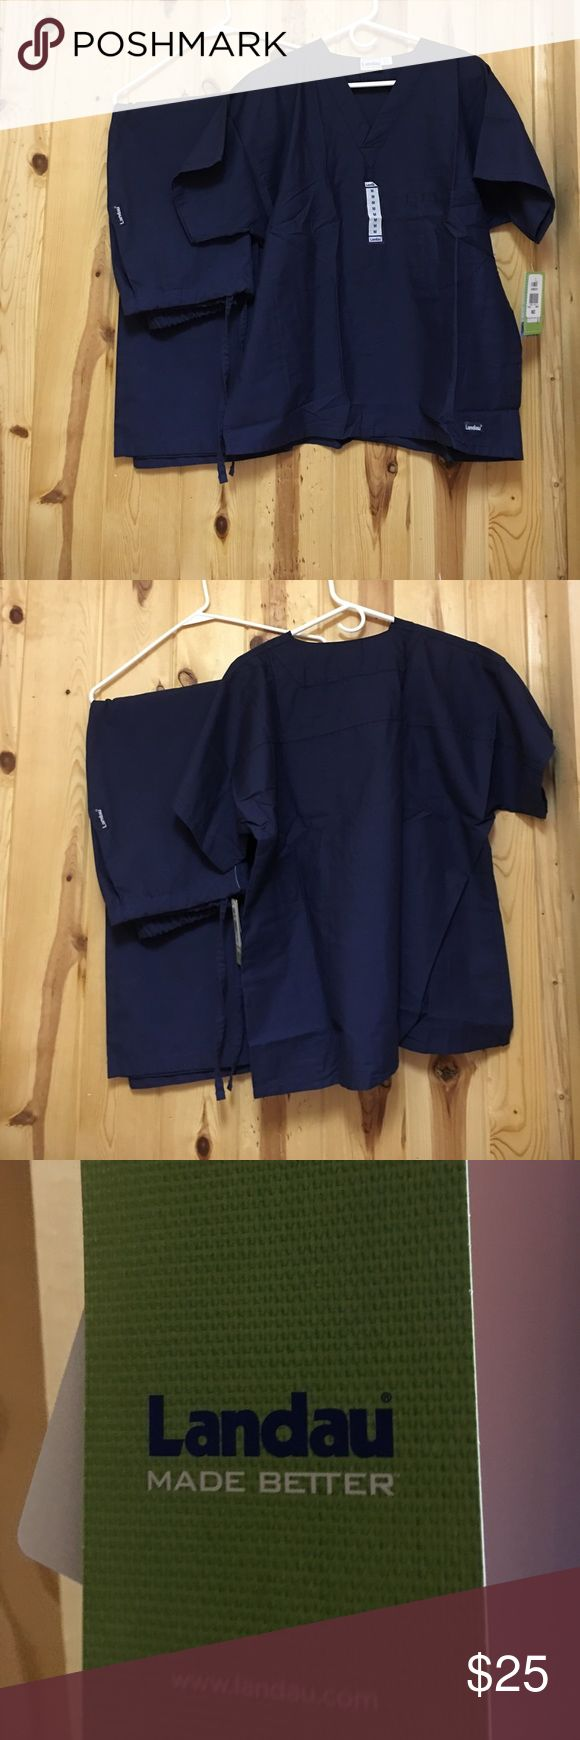 Landau Scrub Set Small Regular Pant Medium Top New Landau Scrub Set Small Regular Pant and Medium Top Top has Chest Pocket and NWT Pant 2 Side Pockets and Elastic Waist with Ties NWOT Color is Navy Landau Other